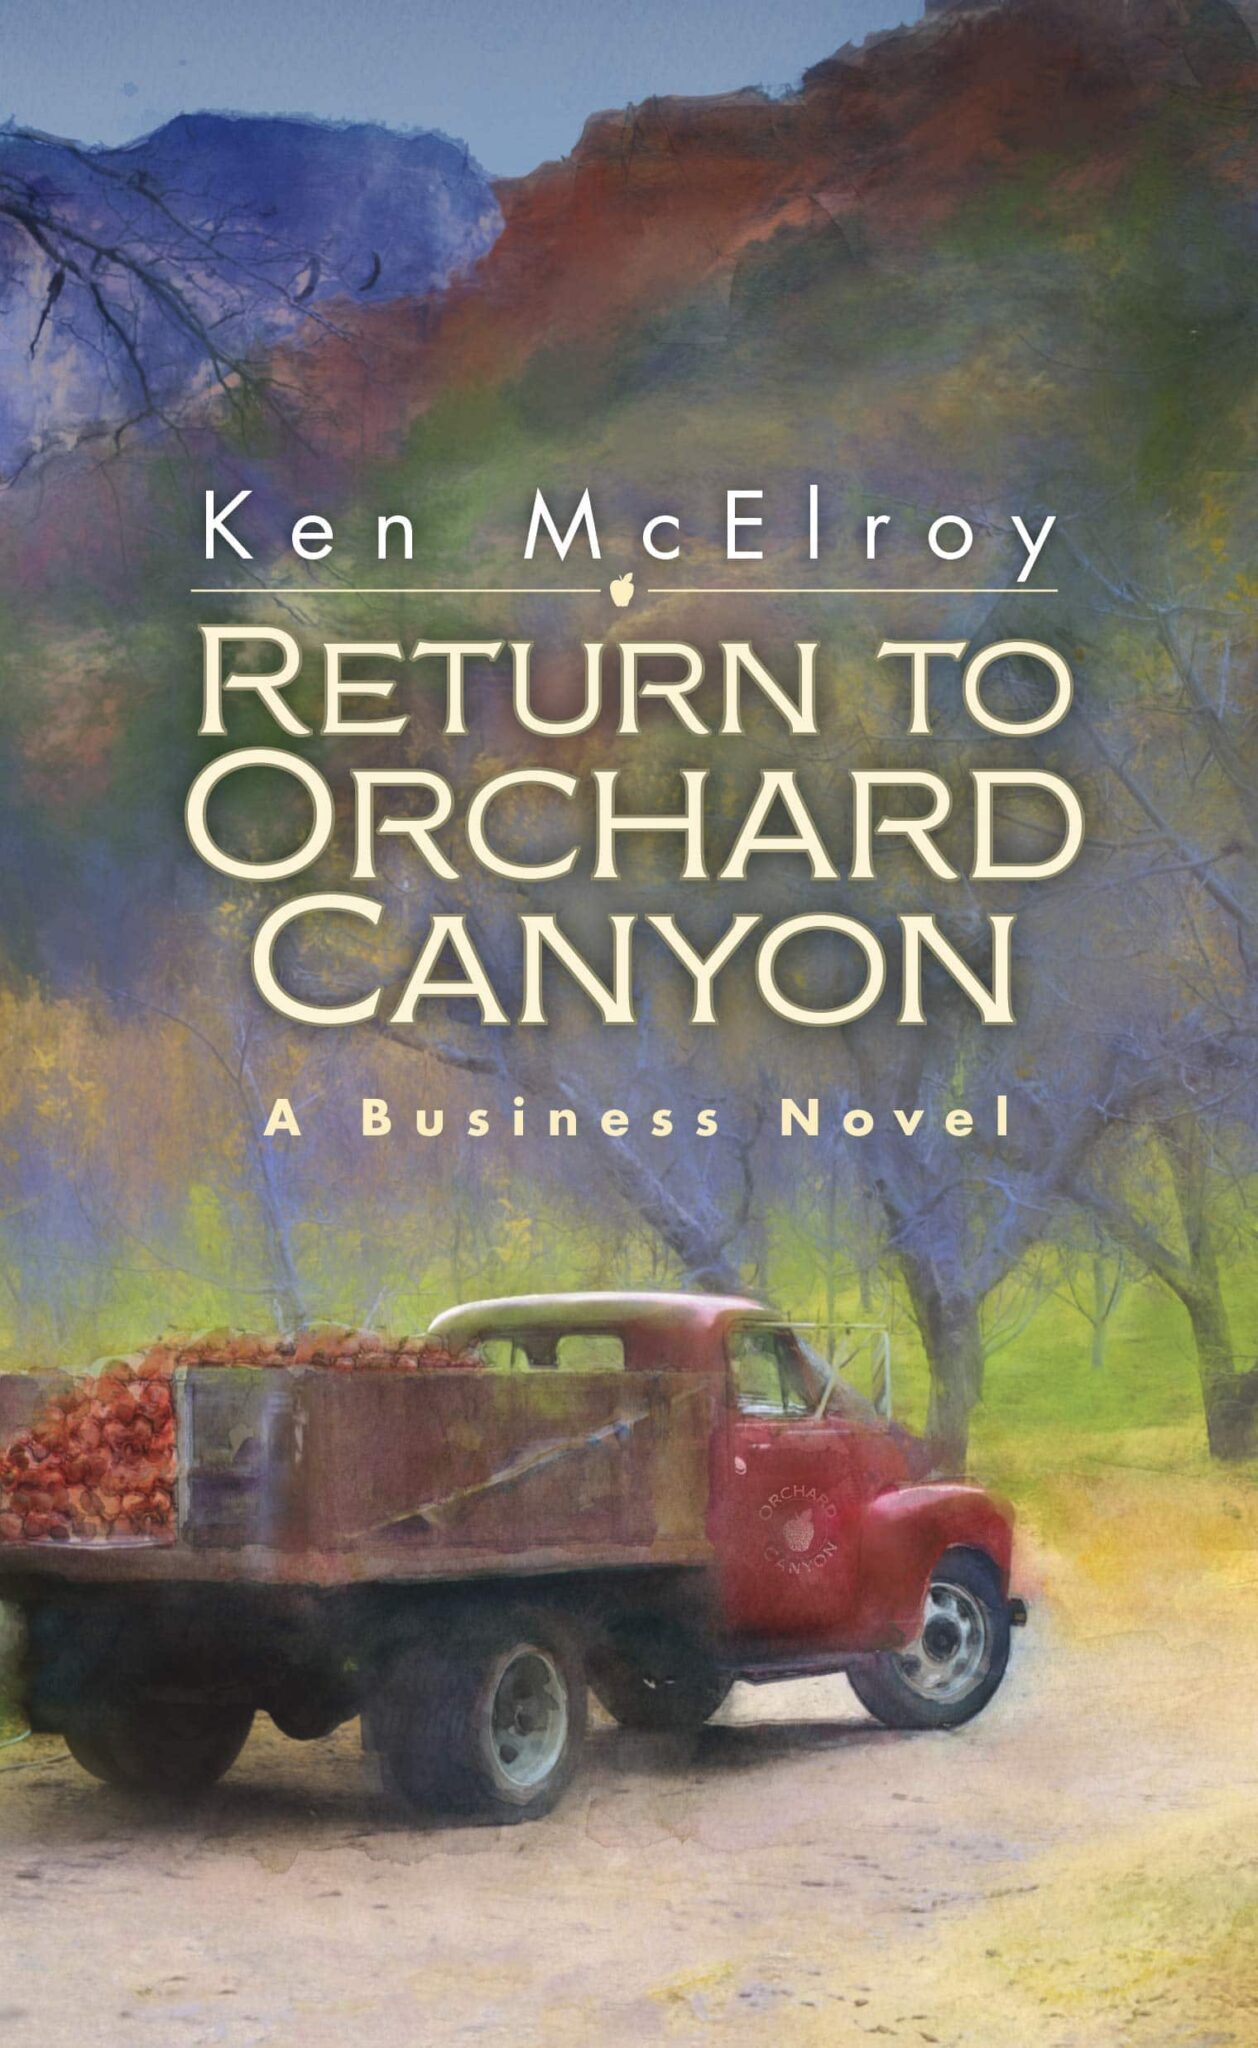 Return to Orchard Canyon a Business Novel by ken mcelroy scaled | Ken McElroy Image